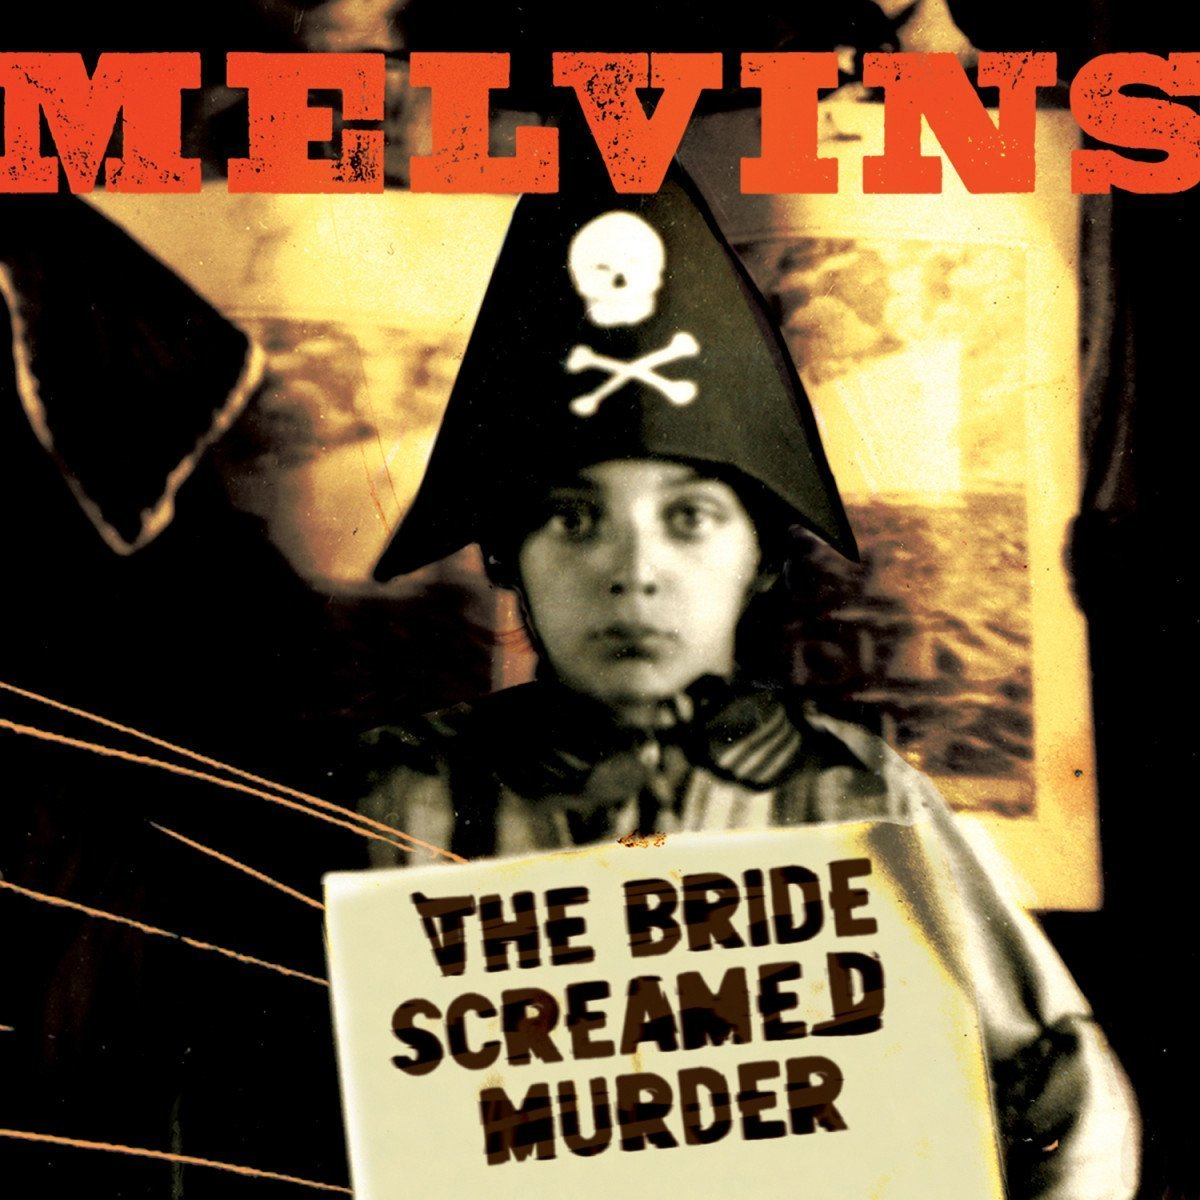 Melvins, The Bride Screamed Murder